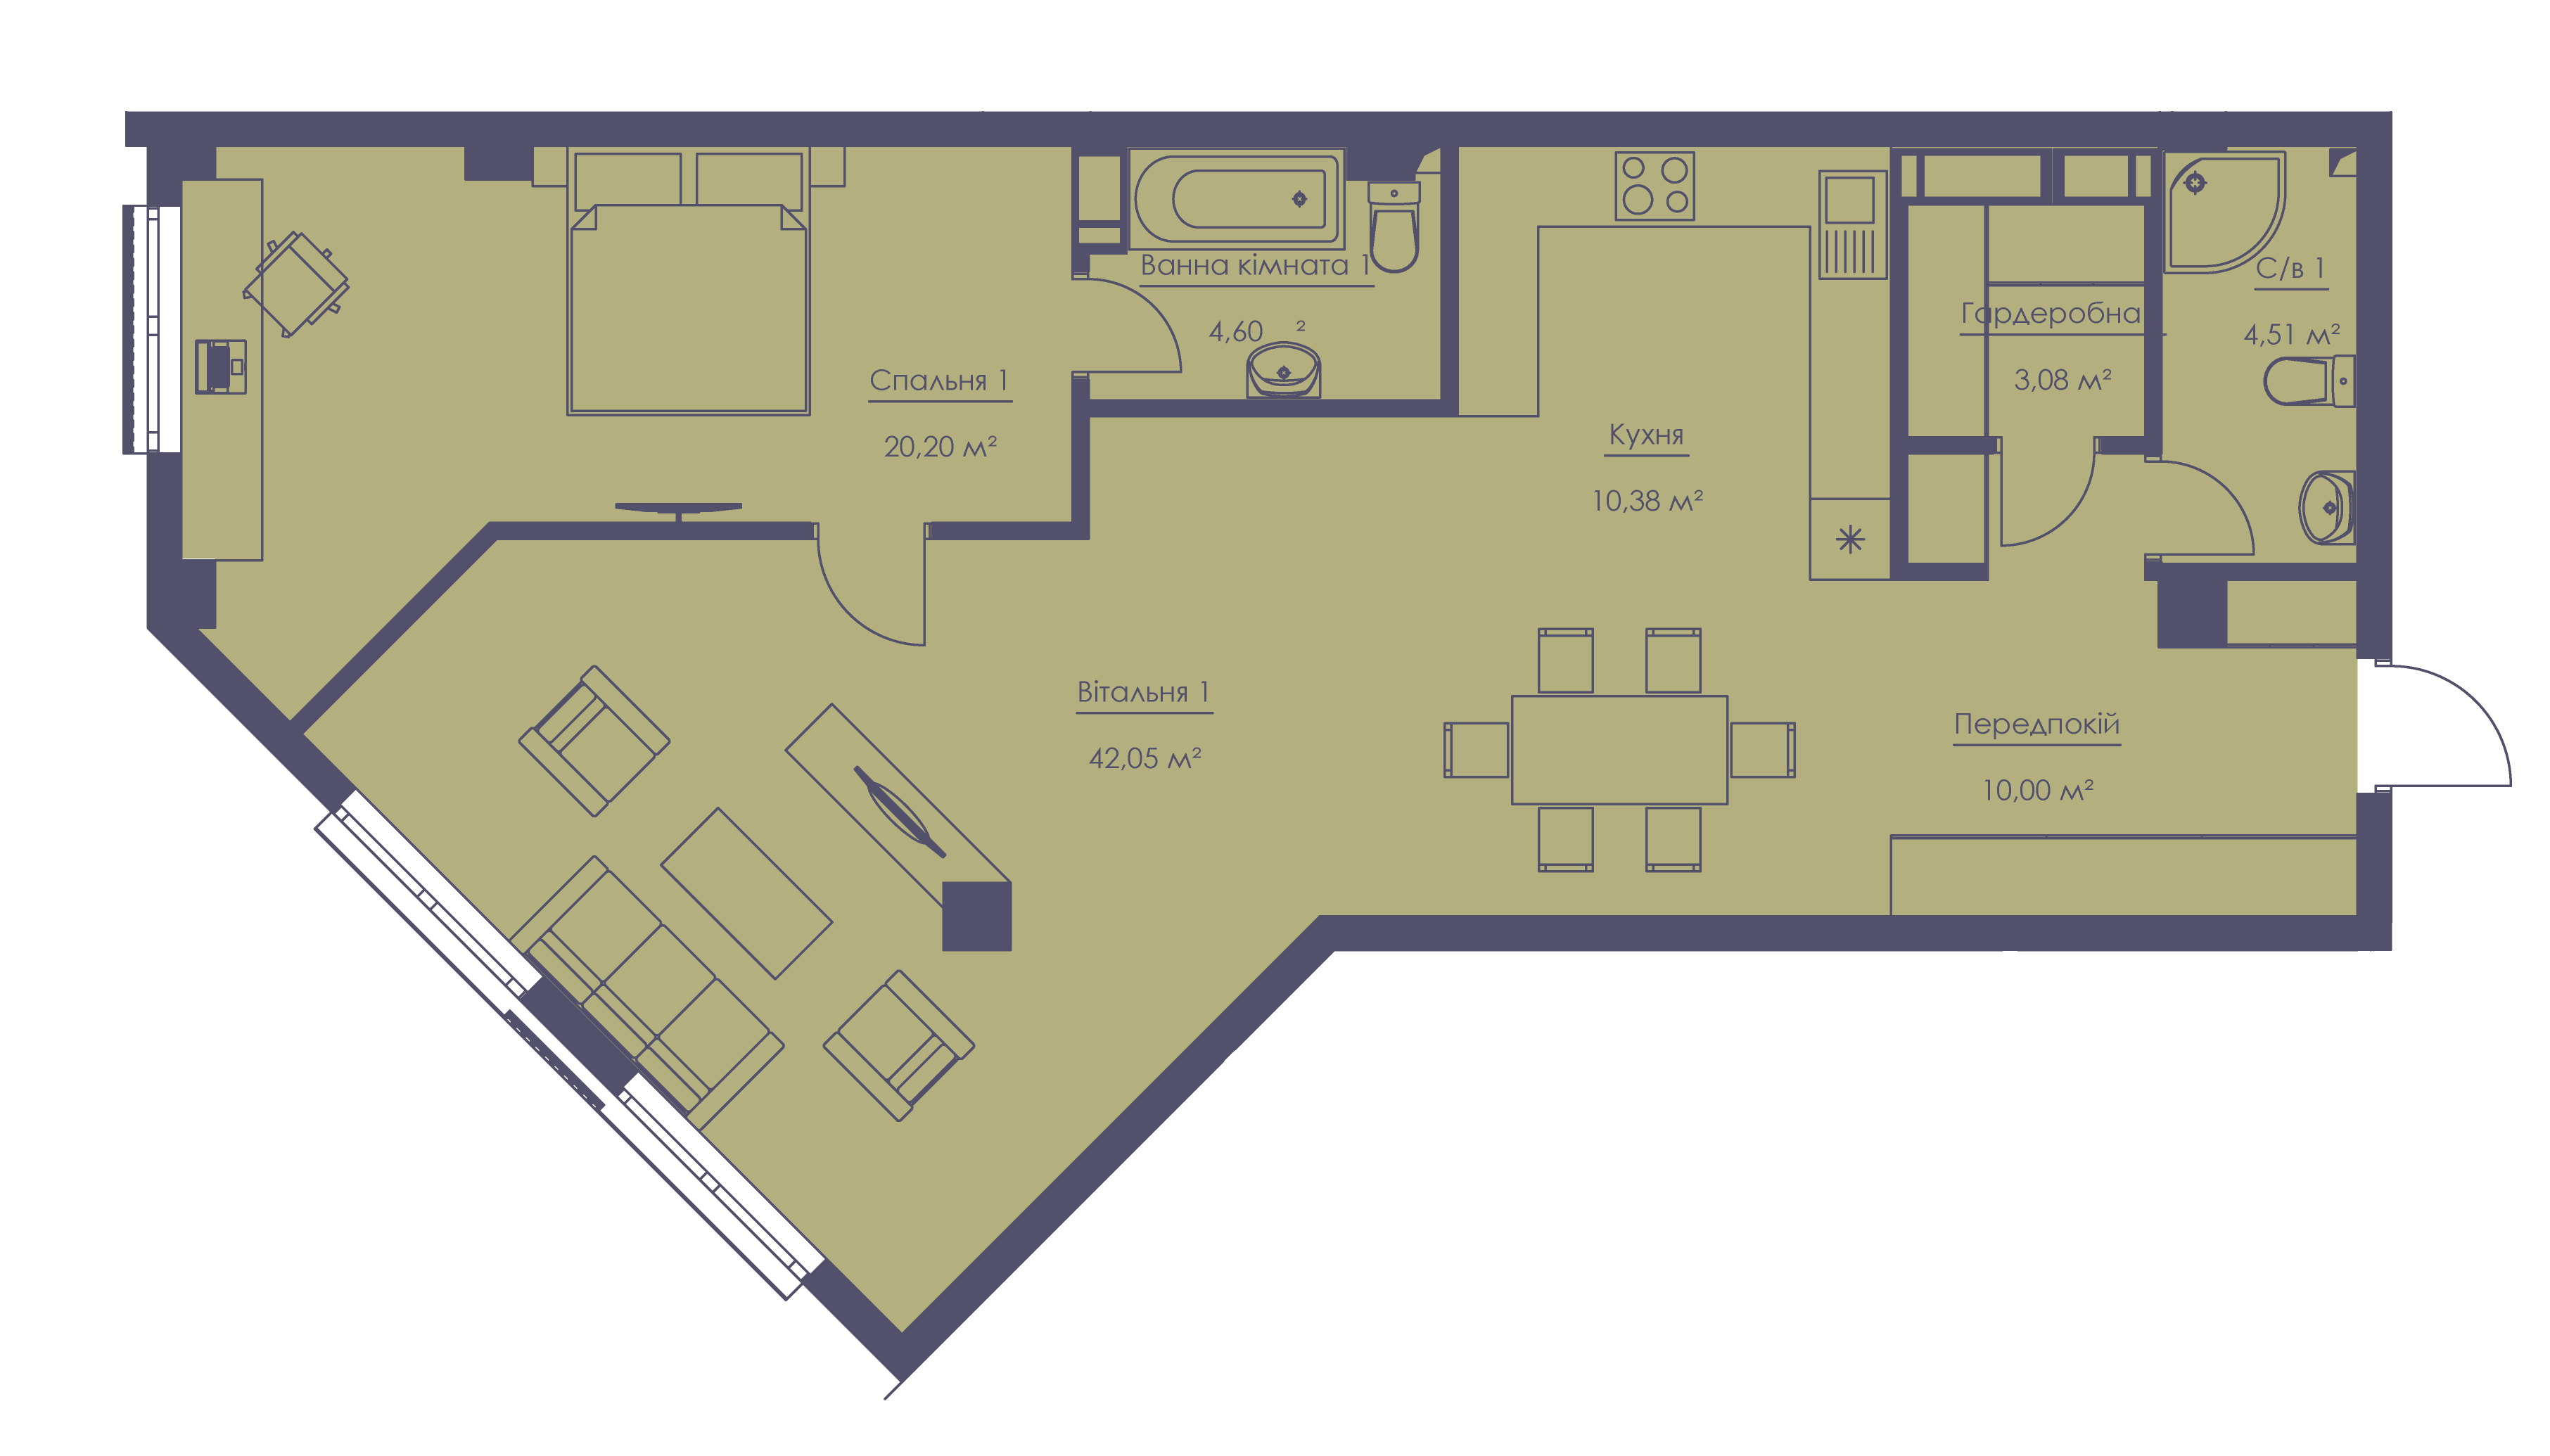 Apartment layout KV_5_1.2v_1_1_5-1